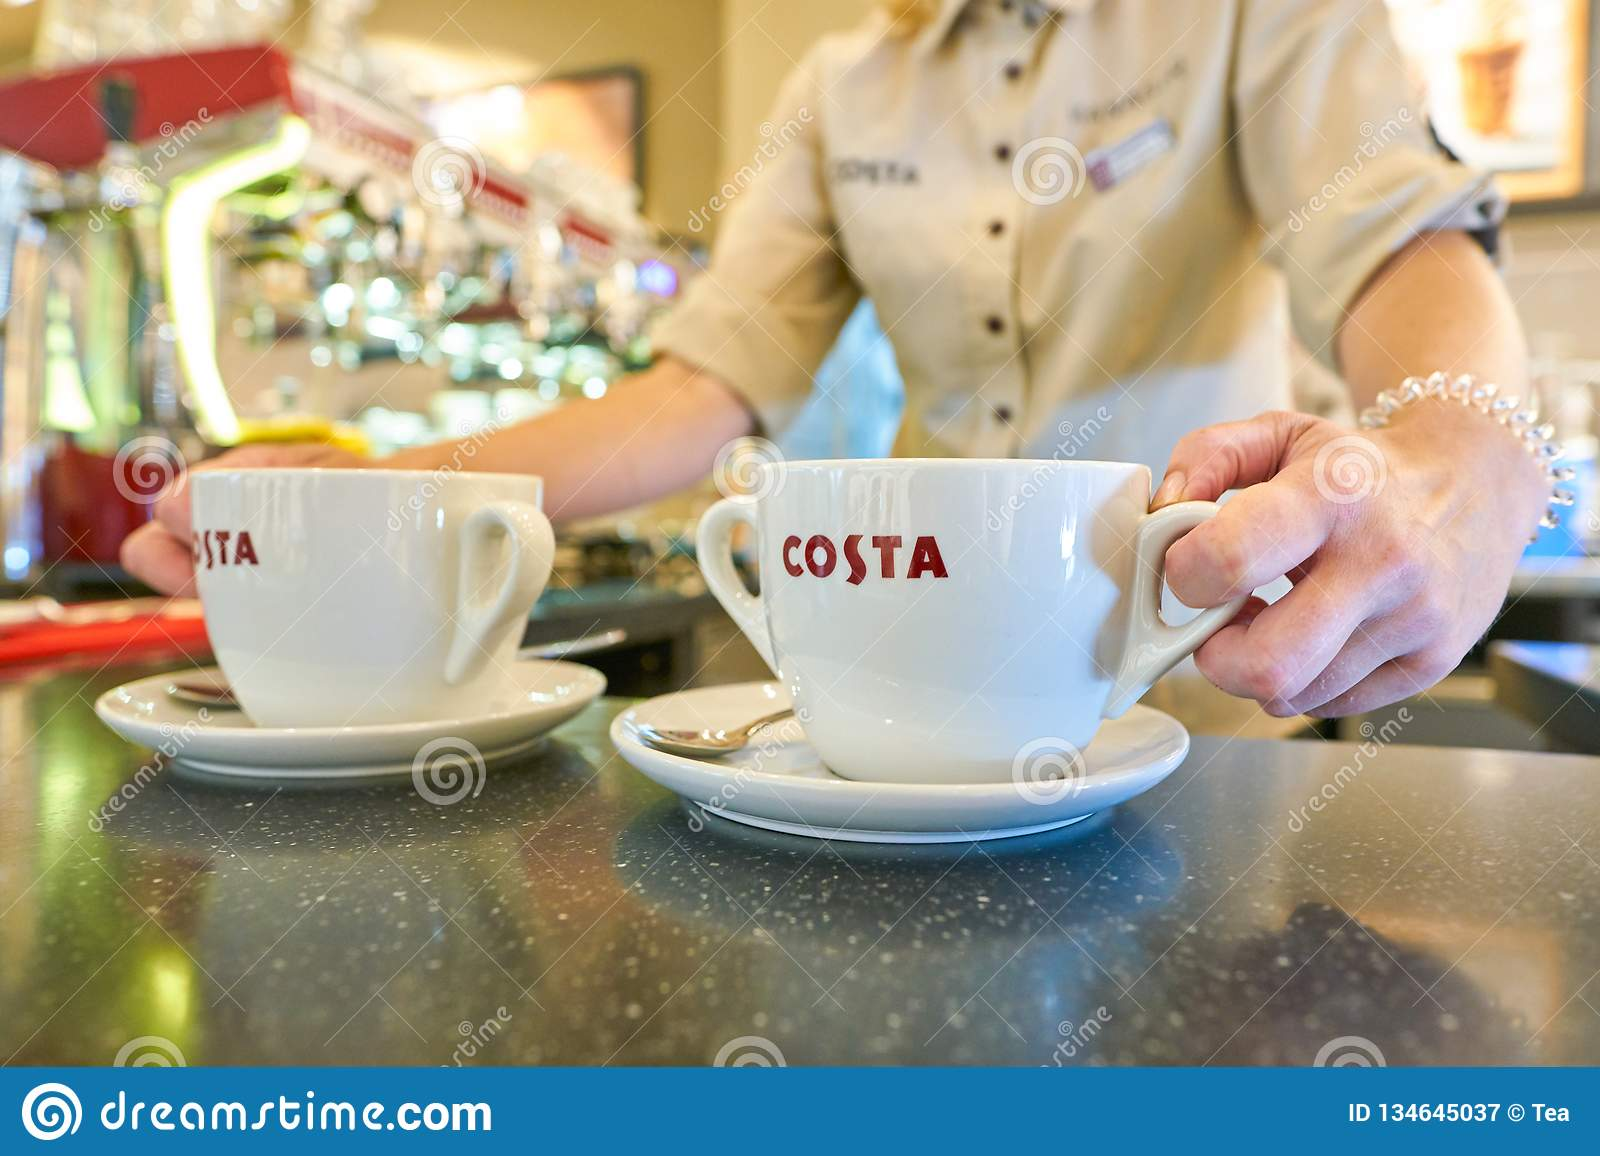 costa coffee editorial photography